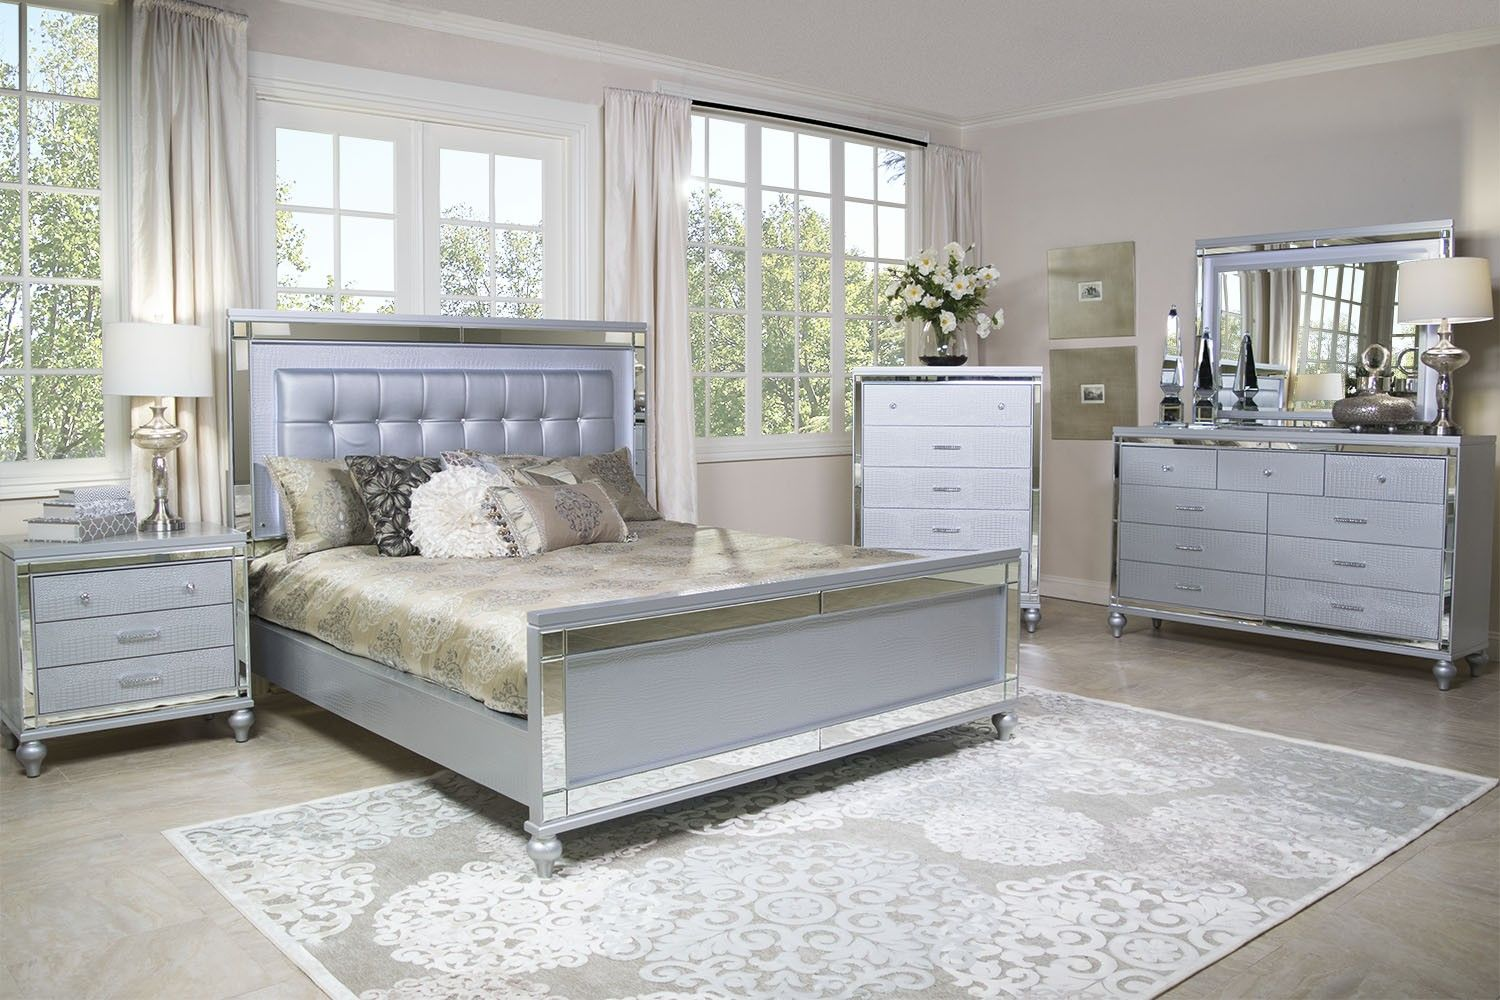 Mor Furniture Bedroom Sets | Valentino Bedroom Bedroom Mor Furniture For Less Bedroom Ideas